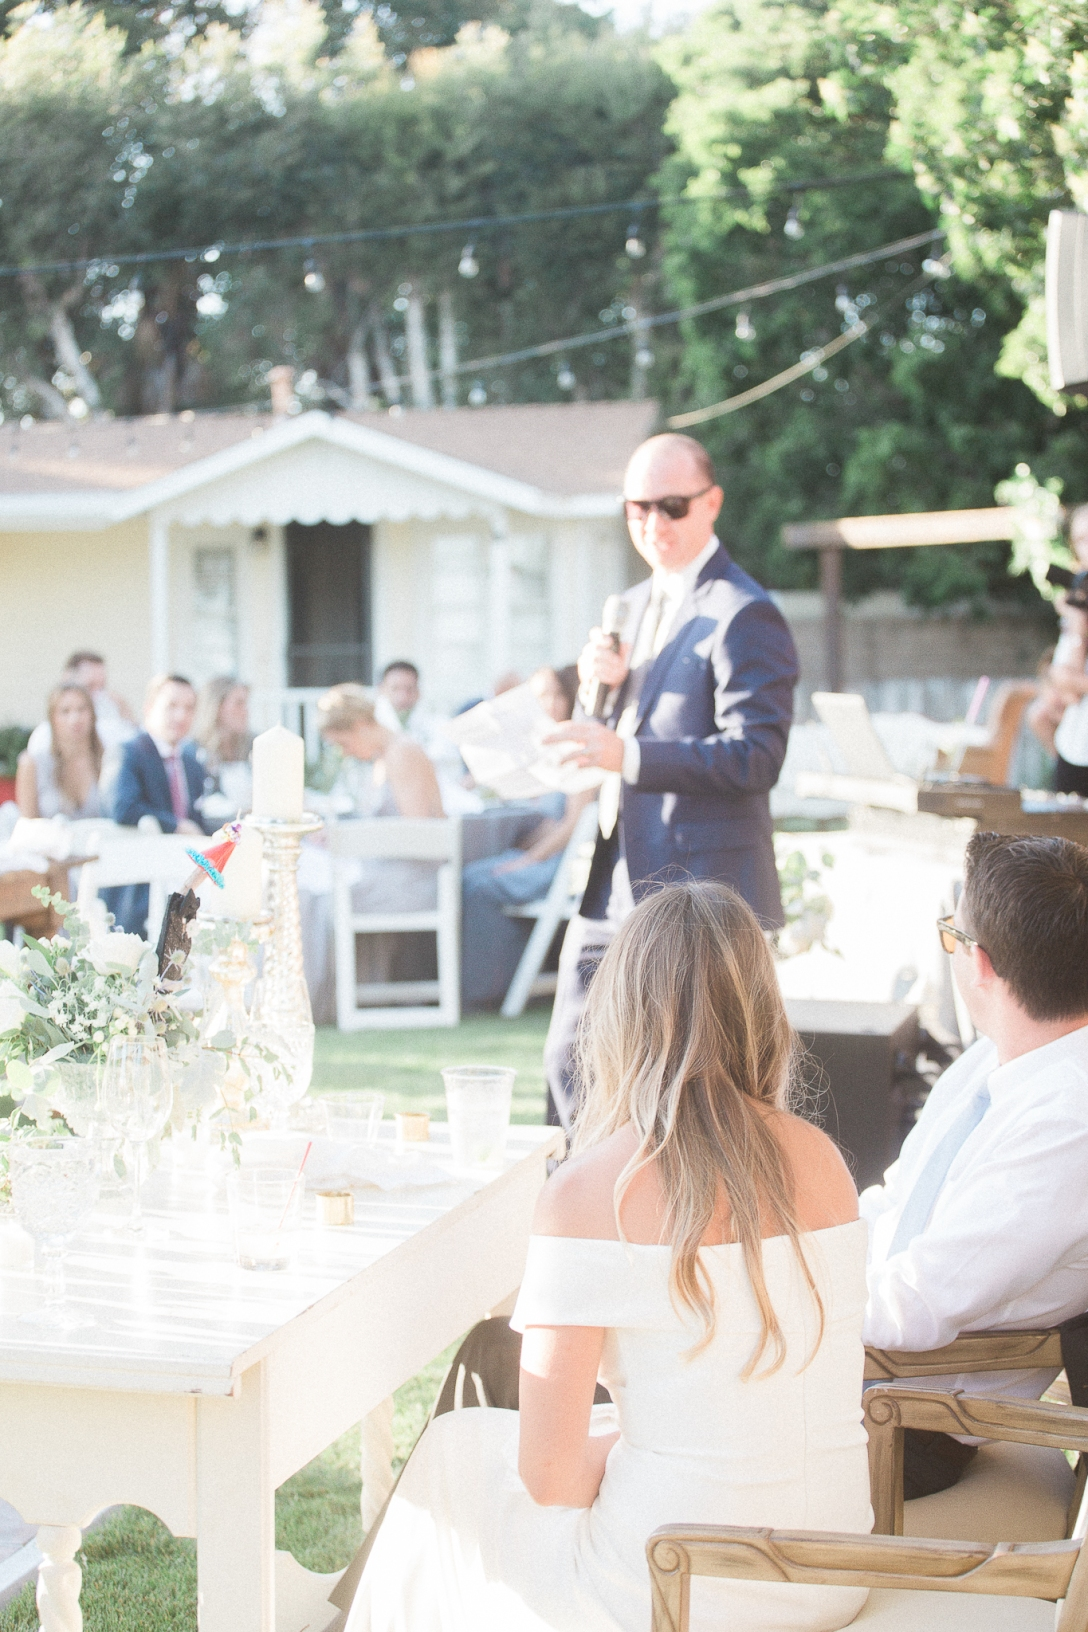 Katy-Steve-Wedding-Tustin-California-77